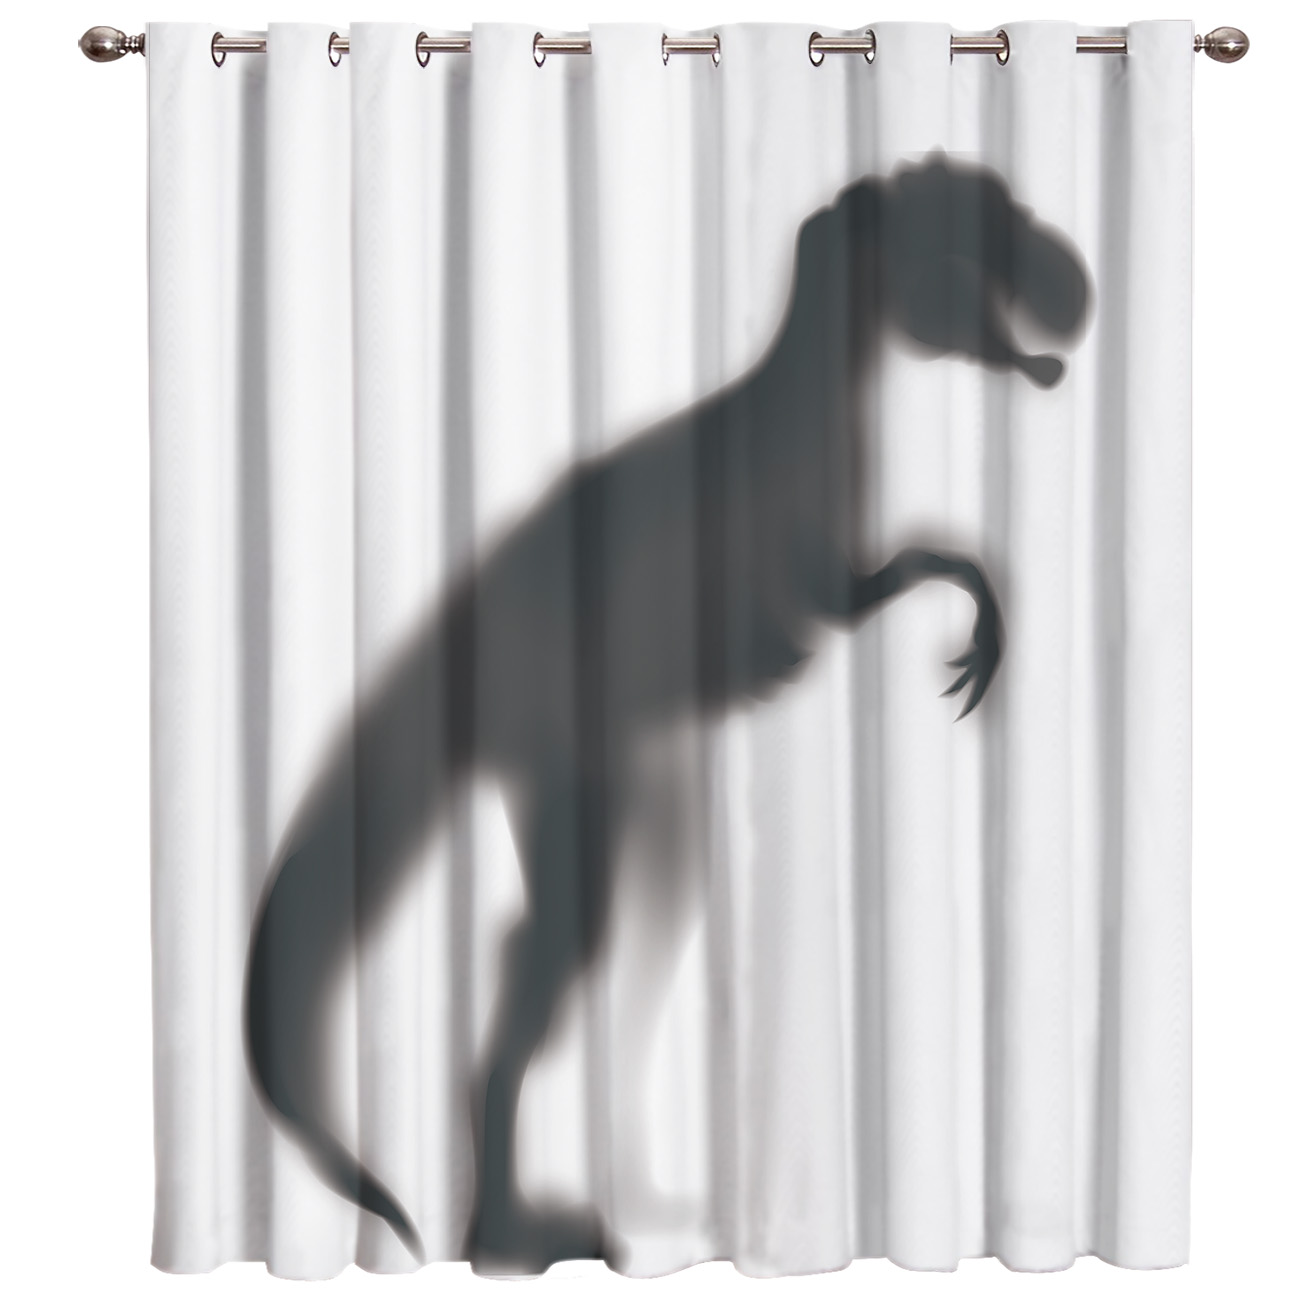 Permalink to Dinosaur Silhouette Window Treatments Curtains Valance Window Blinds Living Room Outdoor Drapes Decor Window Treatment Sets